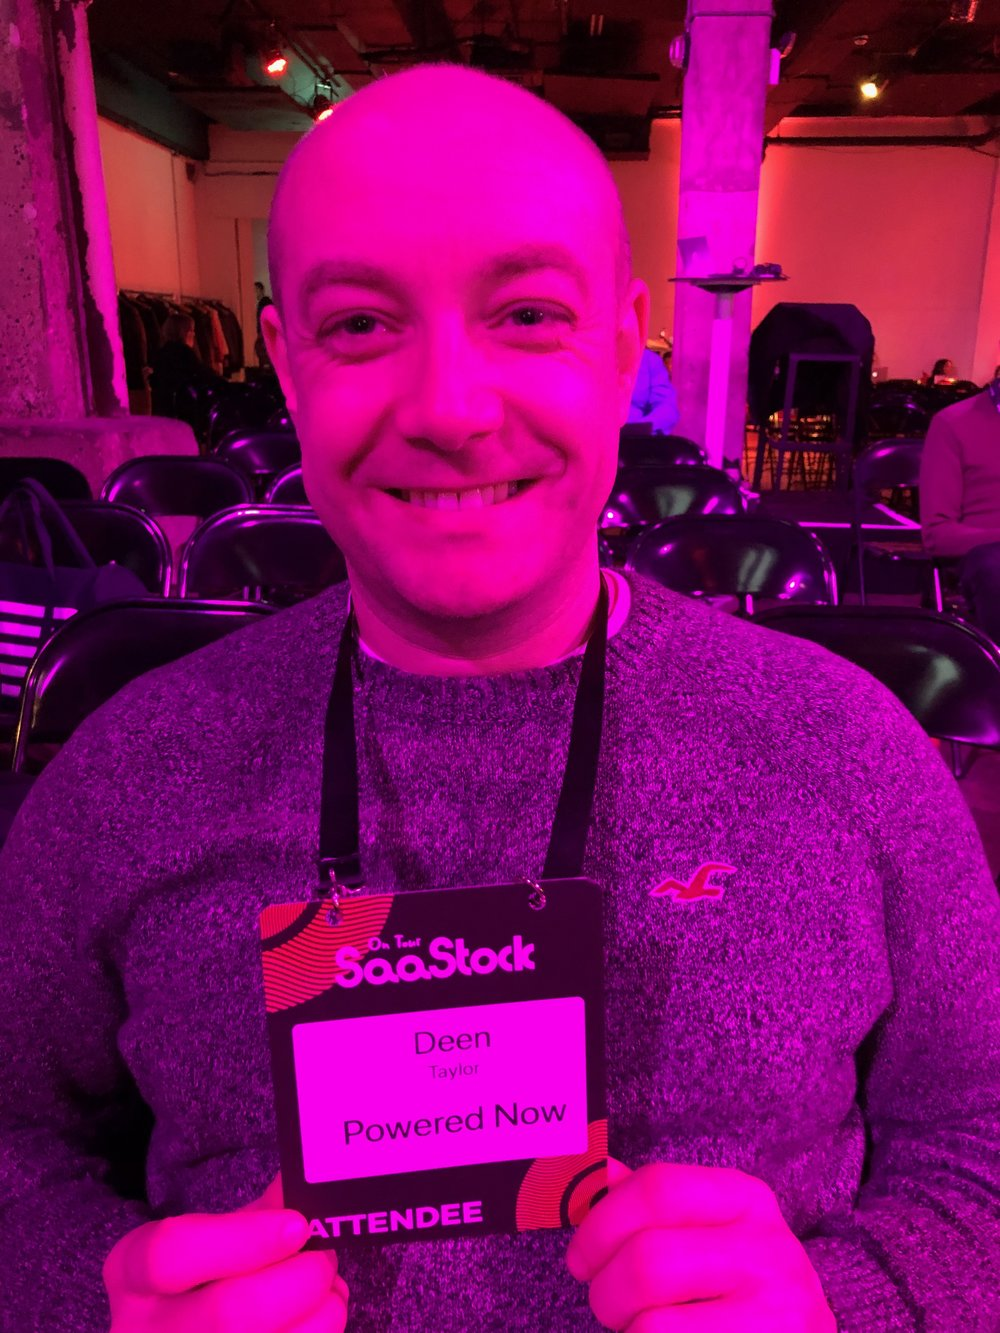 Dwayne at SaaStock London 2018